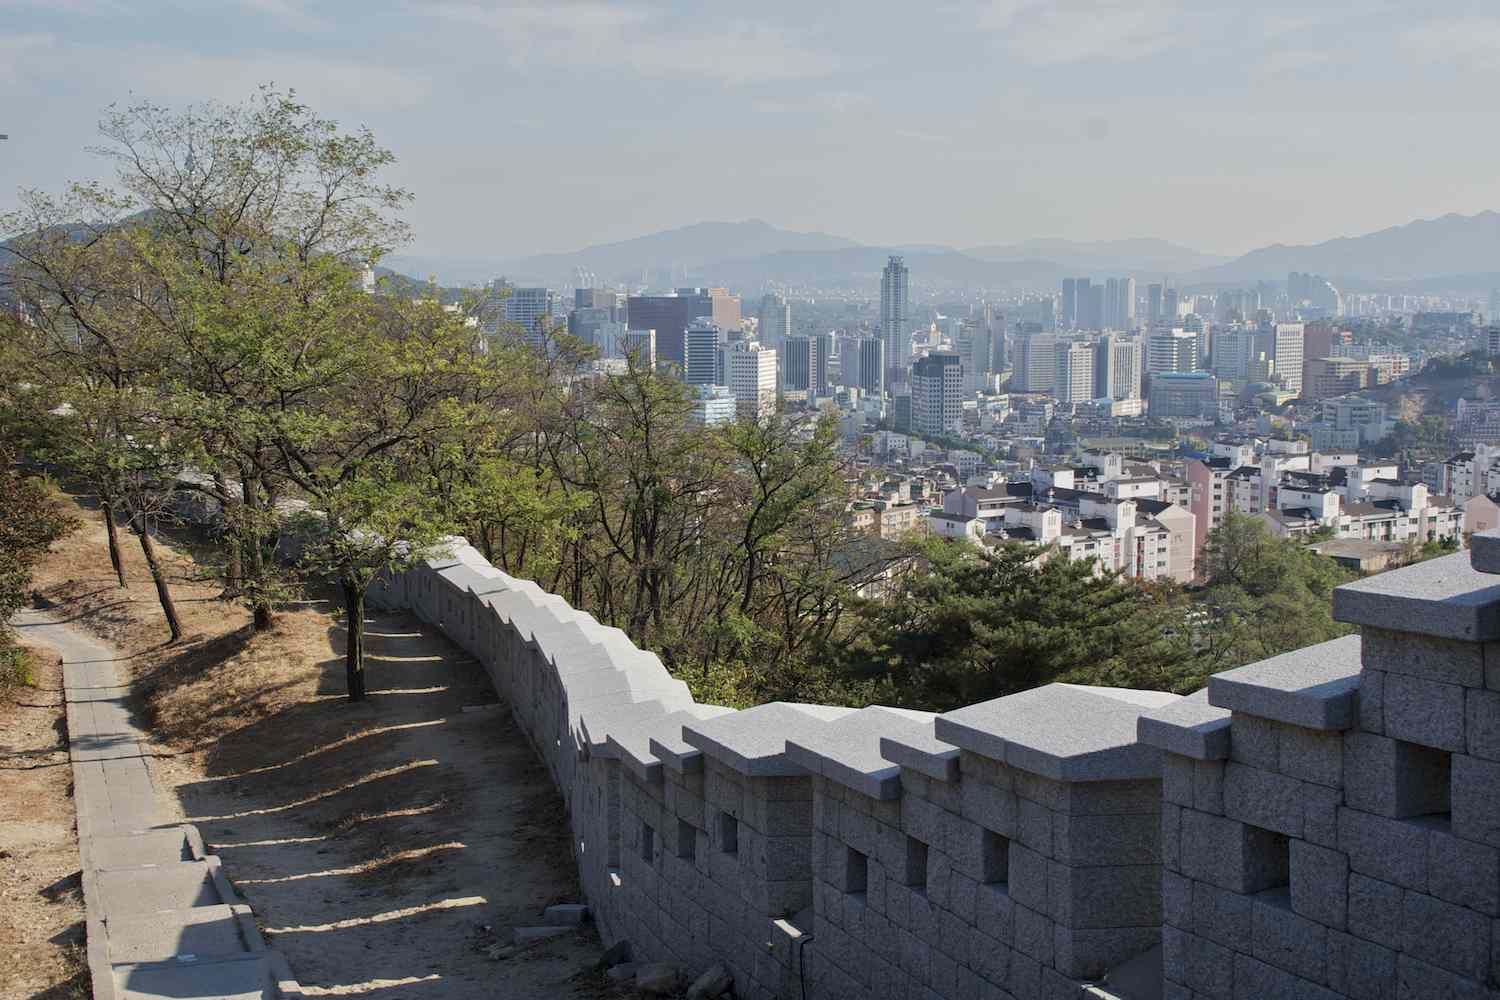 Seoul City Wall overlooking the modern cityscape of Seoul